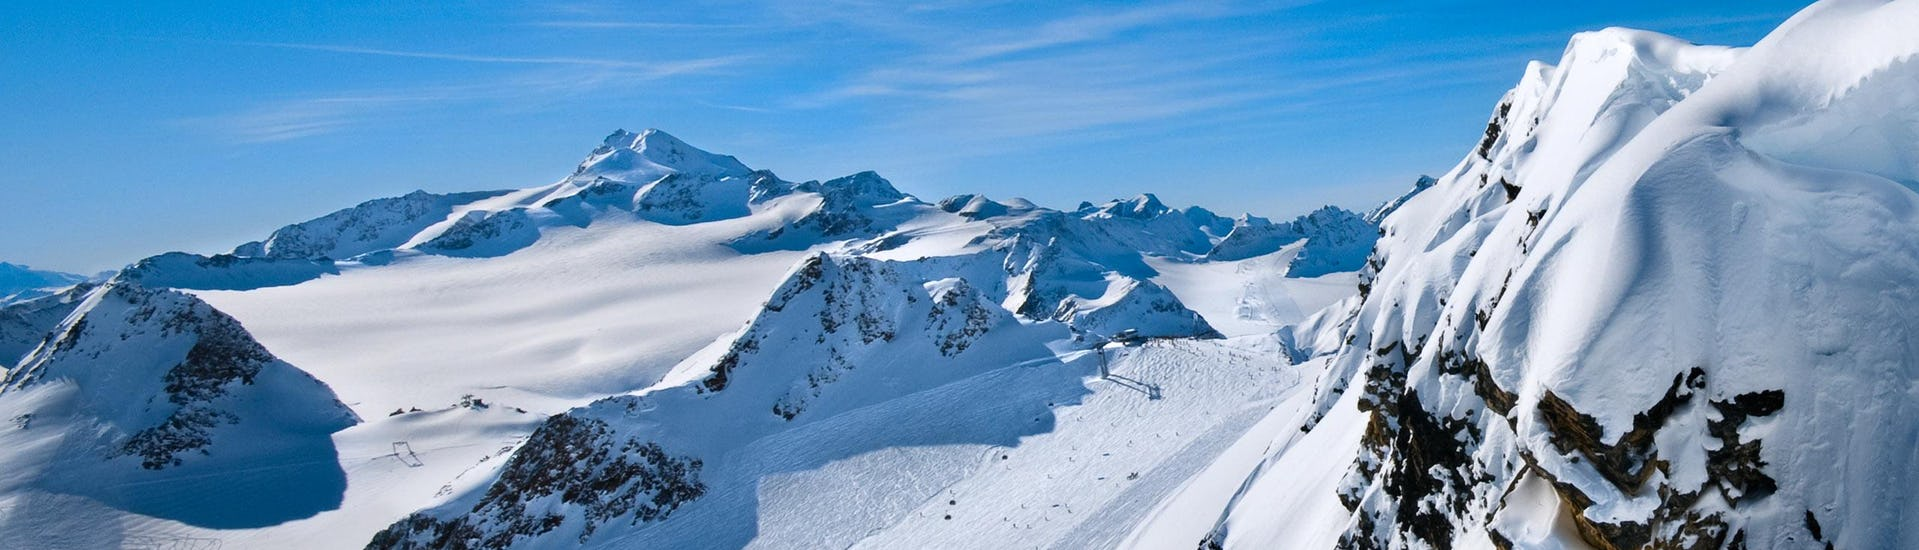 A view of a snowy mountain top in the ski resort of Janské Lázně, where ski schools gather to start their ski lessons.